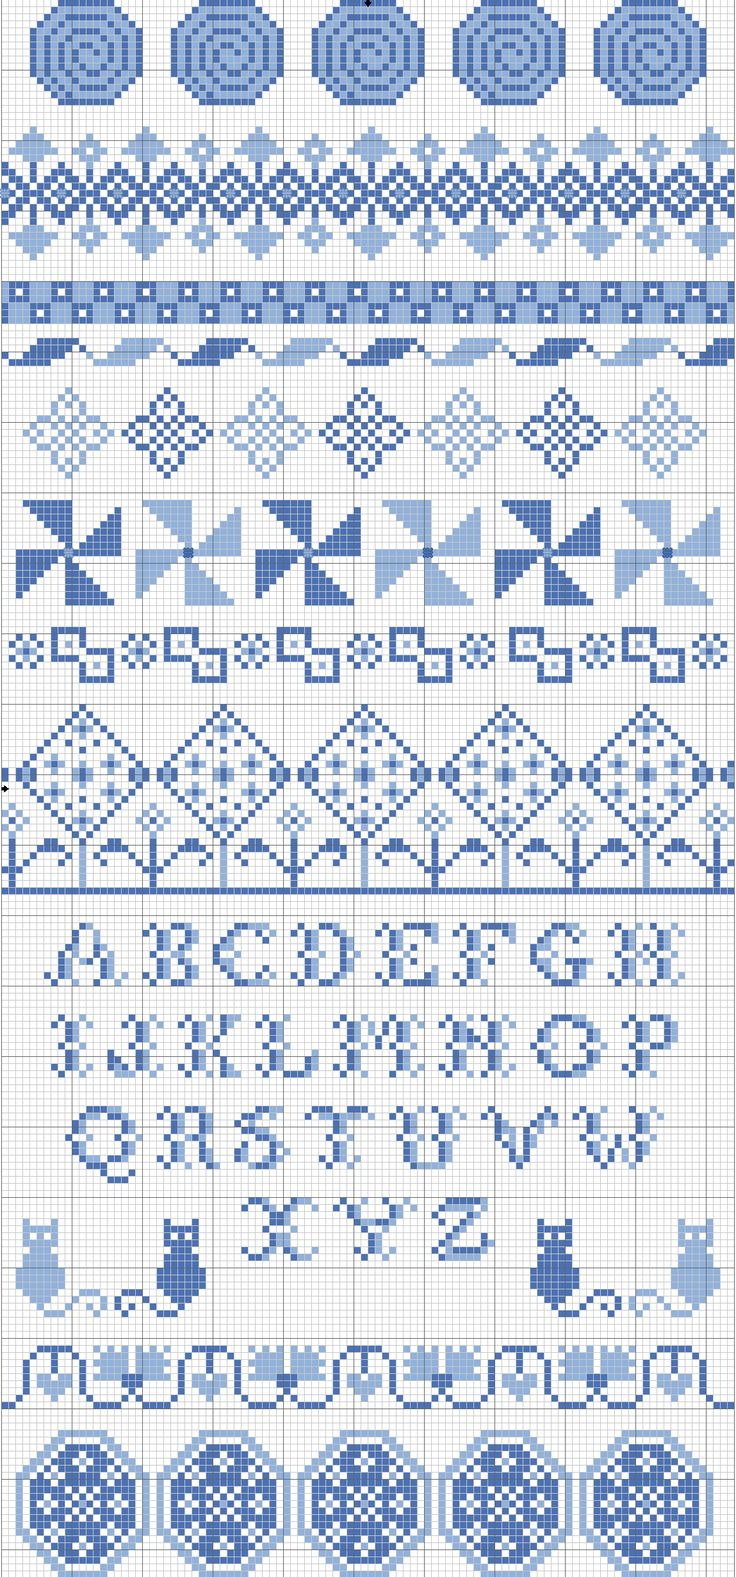 Homage to Jane Kendon - Band Sampler in DMC 798 and 809, designed by Remy Lawler, blogger for Embroiderbee's Primary Hive.